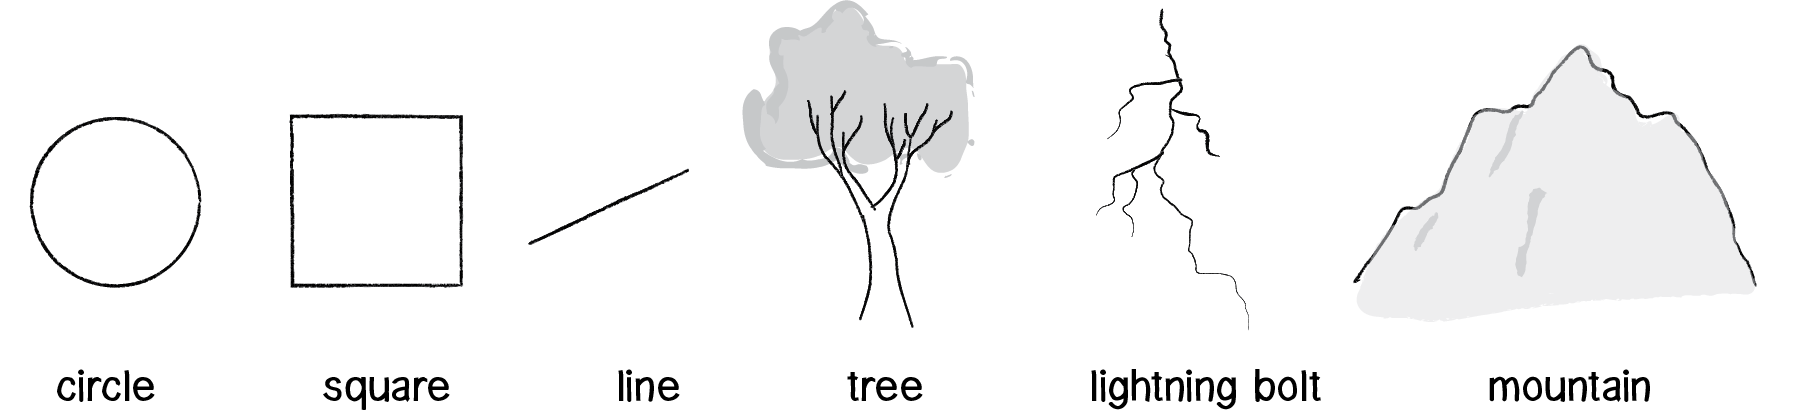 Class drawing nature. The of code